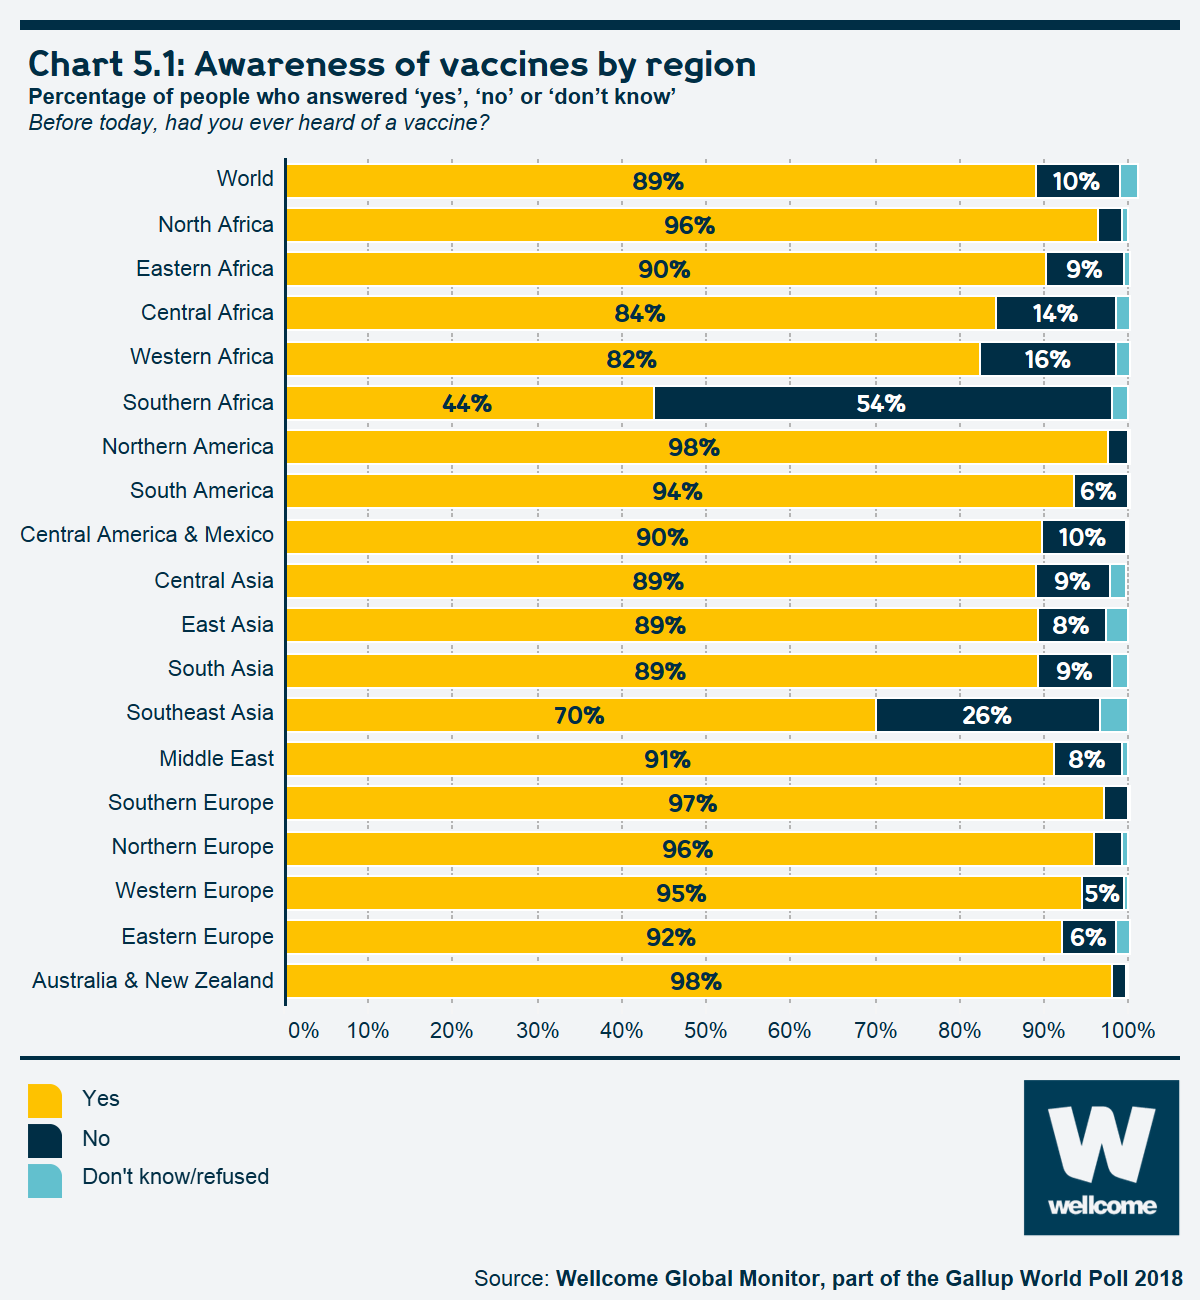 Chart 5.1 Awareness of vaccines by region